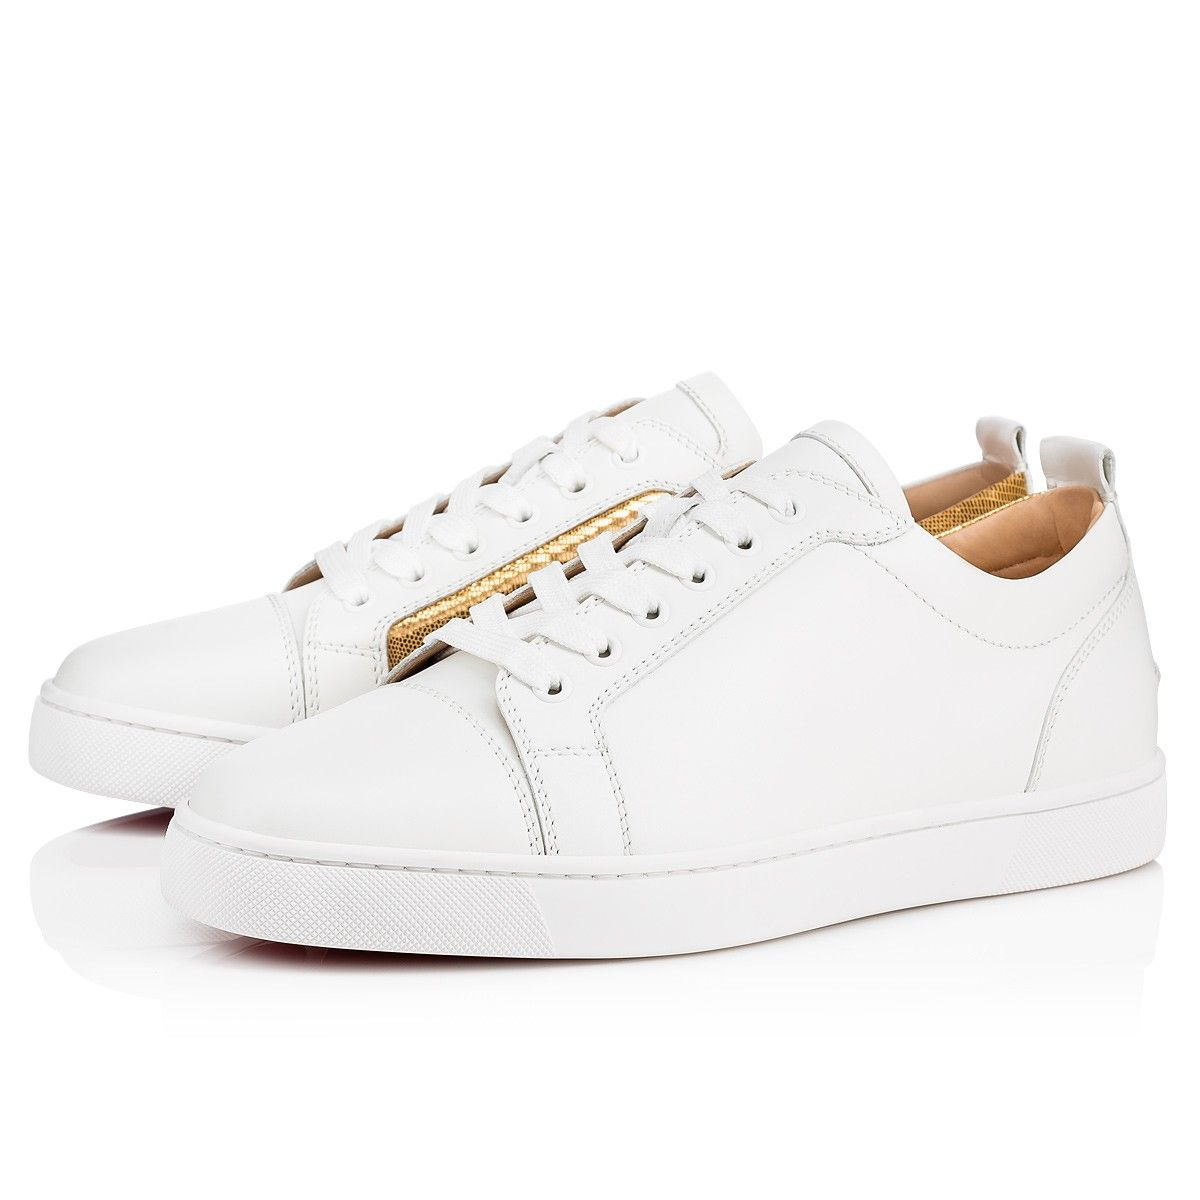 fb1c79701a95 Christian Louboutin United States Official Online Boutique - Yang Louis  Junior Flat Latte Gold Leather Laminato available online. Discover more Men  Shoes by ...